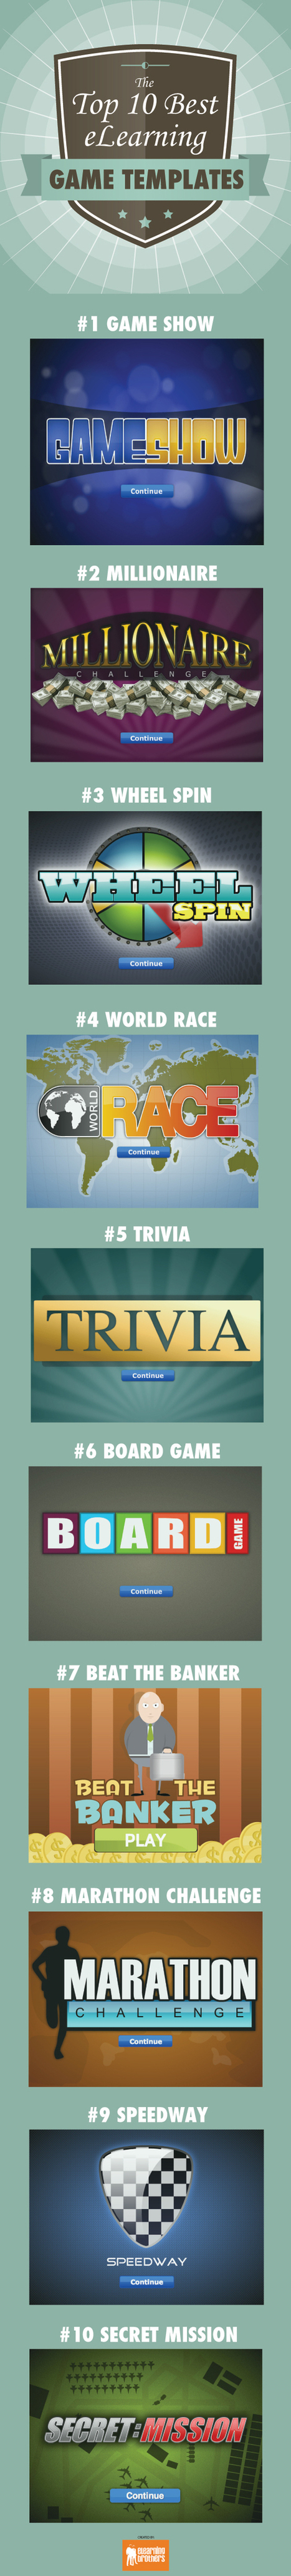 The Top 10 Best eLearning Game Templates Infographic - e-Learning Infographics | Misc | Scoop.it